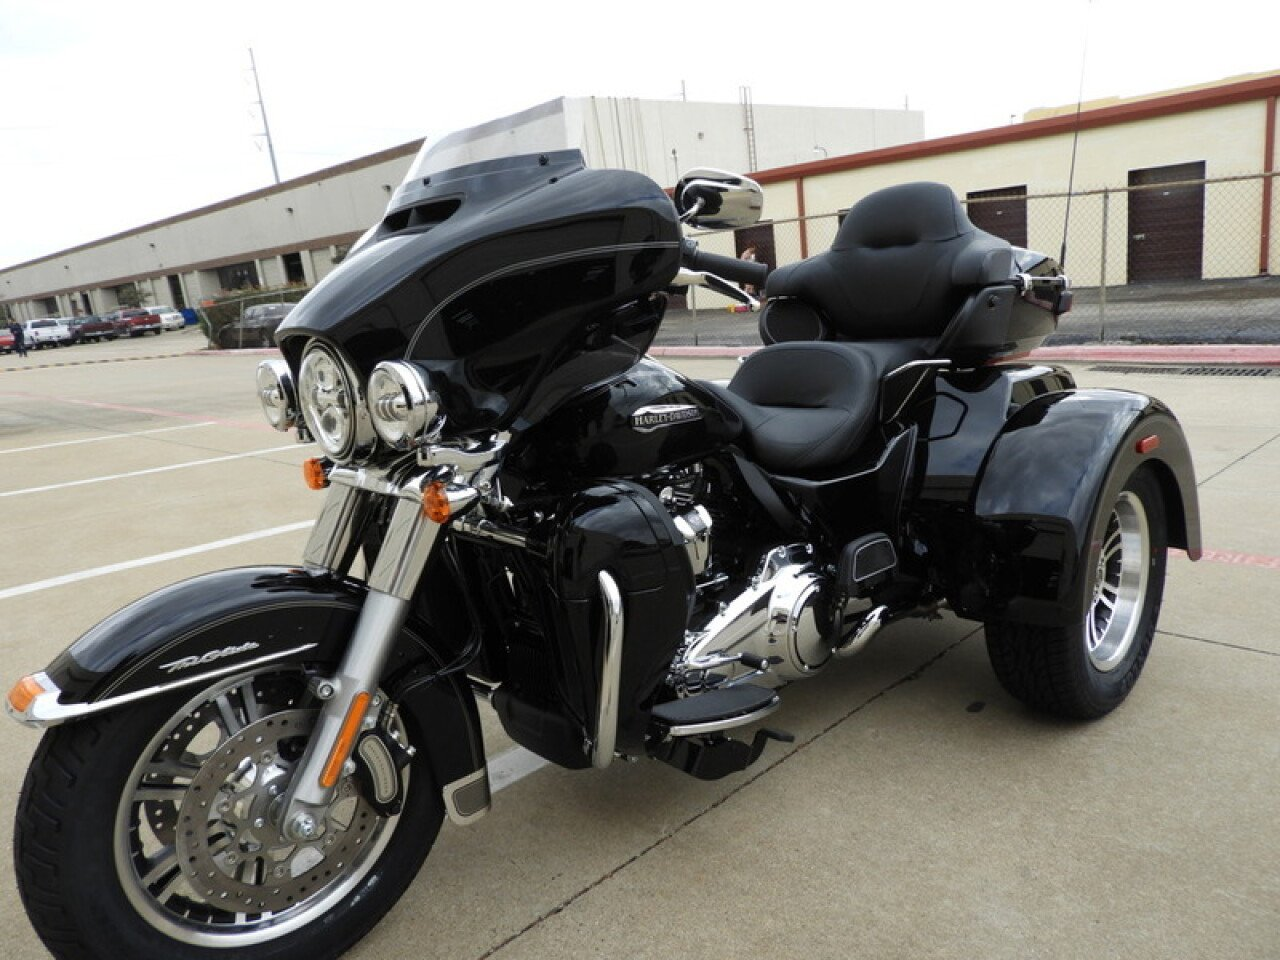 Motorcycle For Sale Dallas >> 2018 Harley-Davidson Trike Tri Glide Ultra for sale near Garland, Texas 75041 - Motorcycles on ...